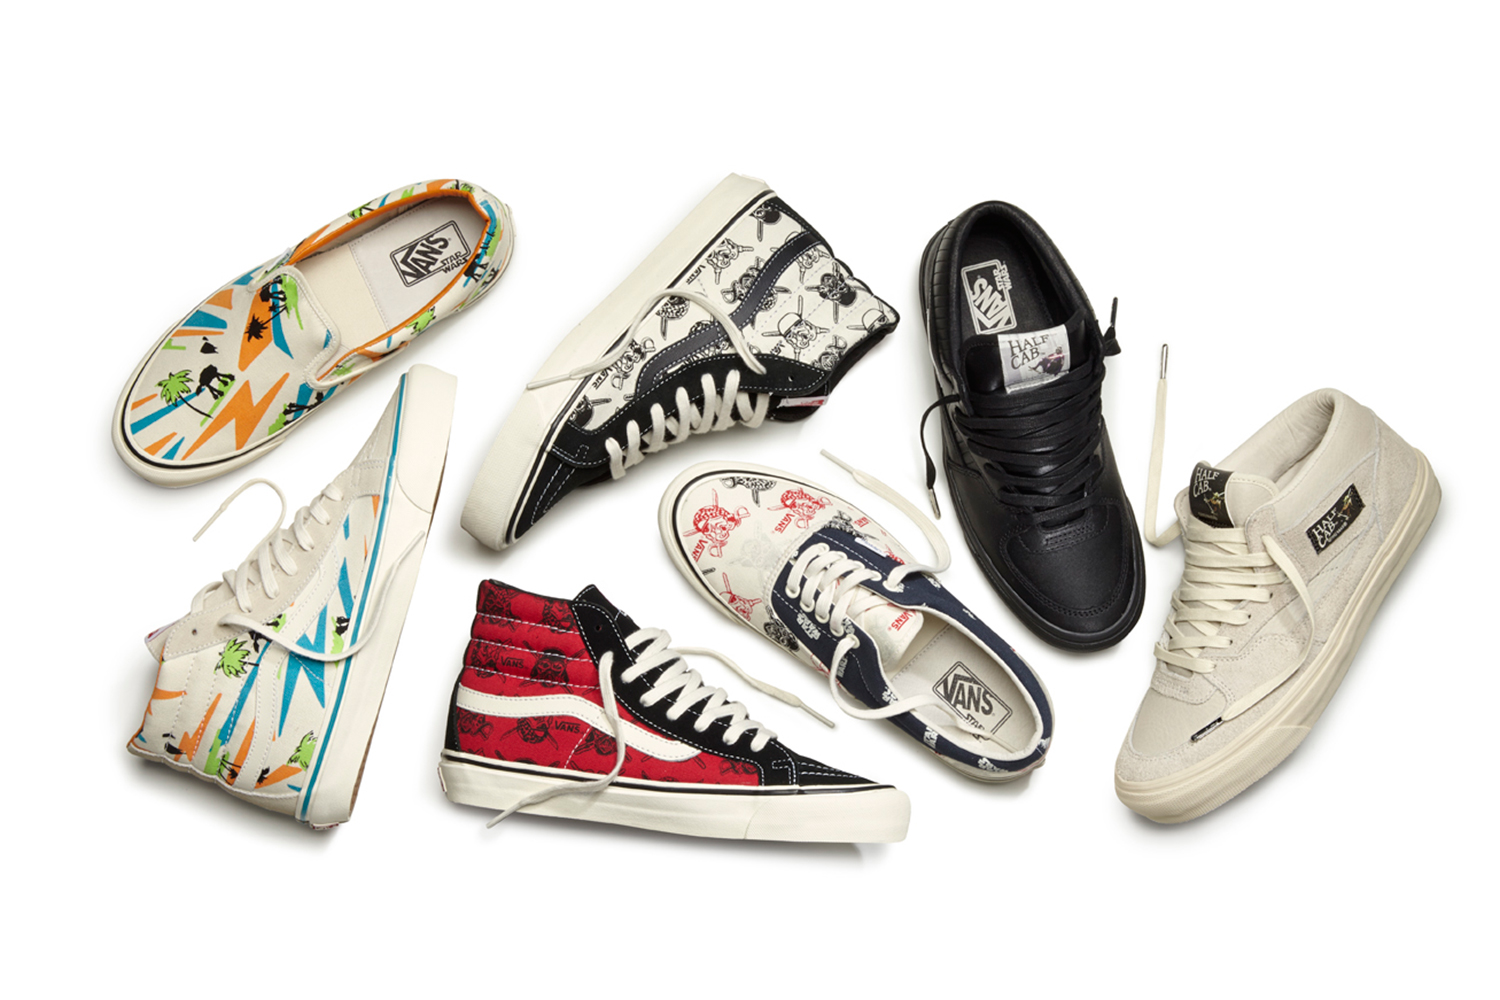 e7c0fb85bd43e7 Vault-by-Vans-x-Star-Wars-Footwear Collection